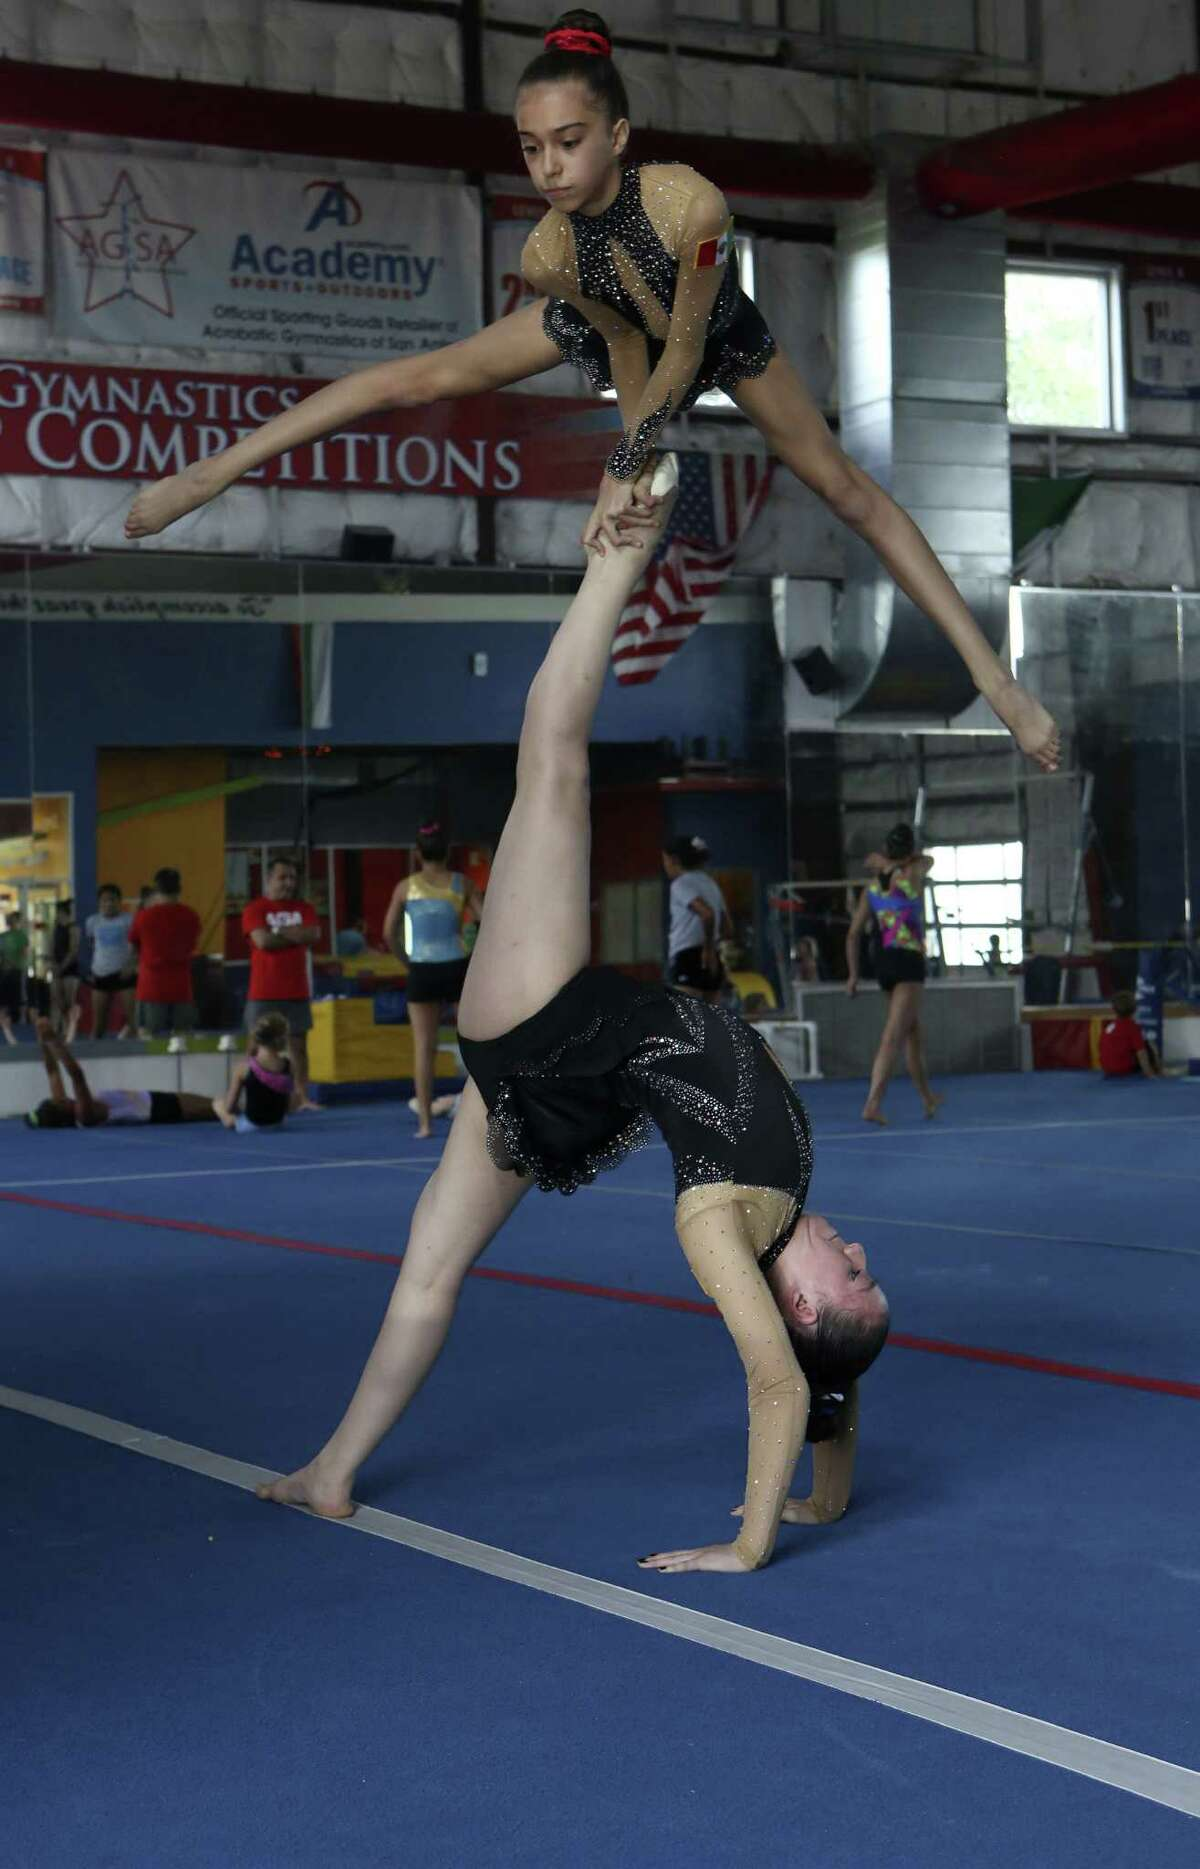 San Antonio acrobats Isabella Melendez, 13, (above) and Ani Caballero, 16, will represent Mexico at the 2014 Acrobatic Gymnastics World Championships in Paris, France July 2 - 5.